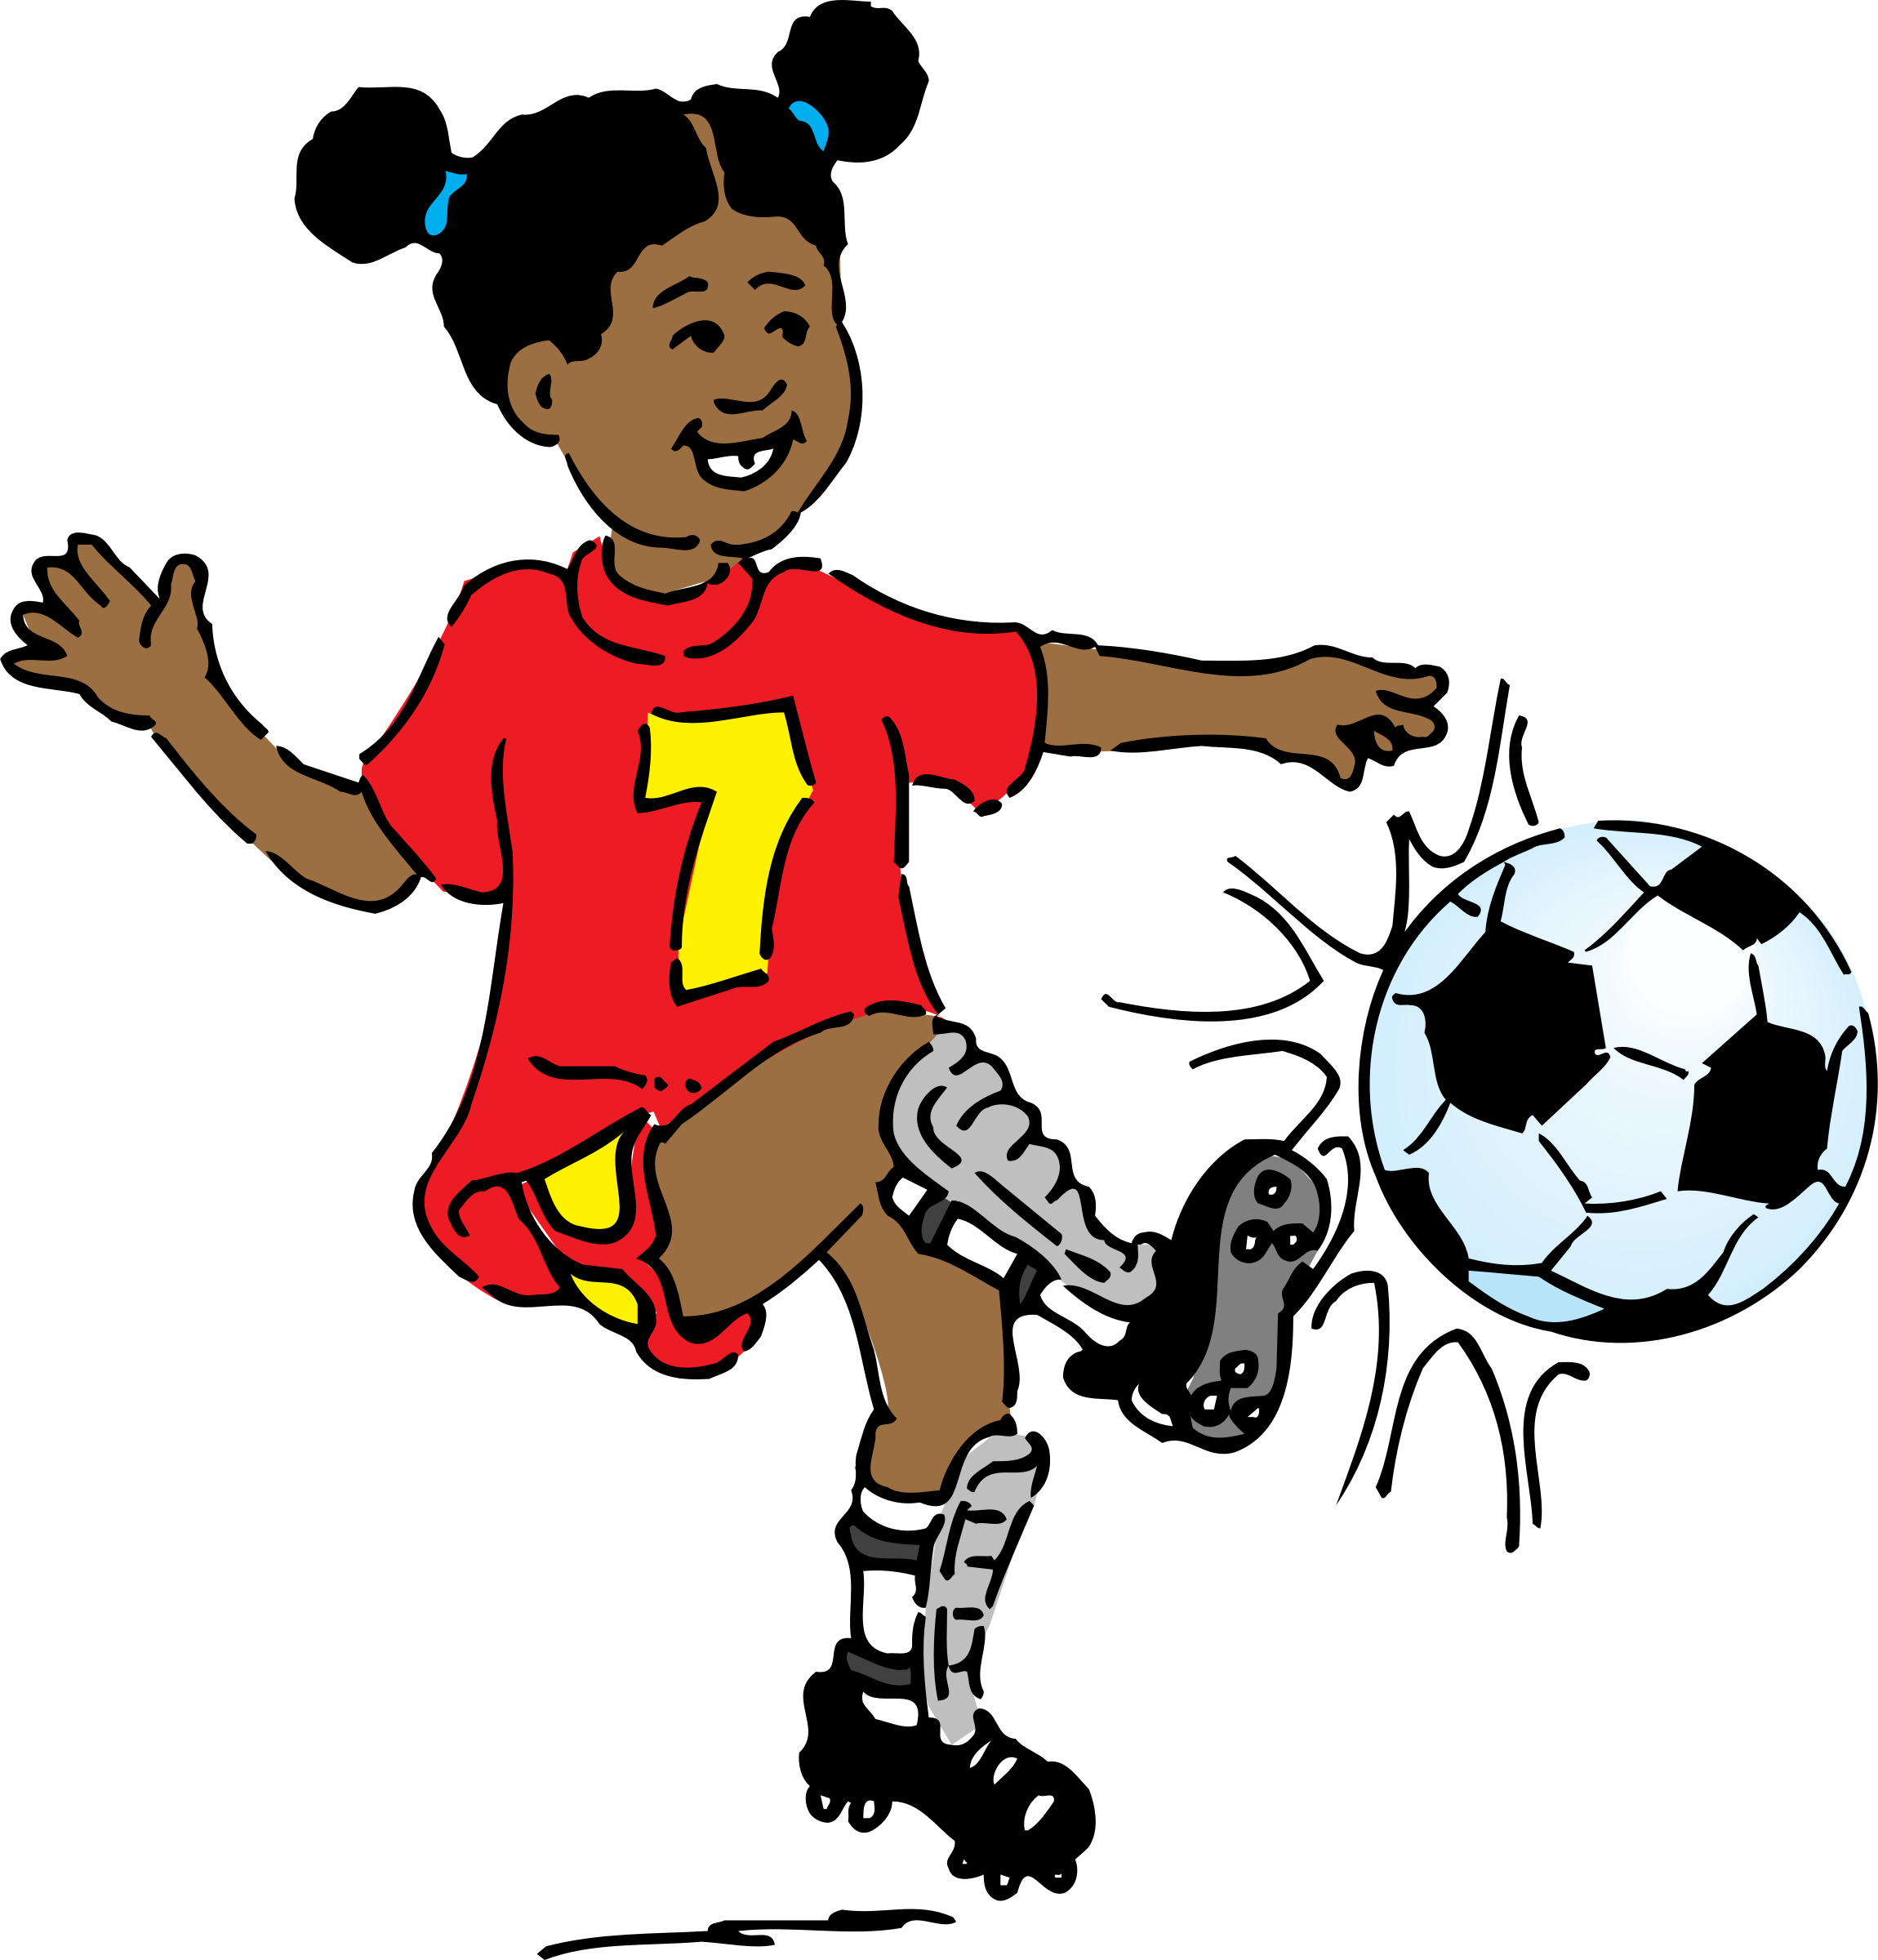 Person clipart sport. Girl playing soccer big